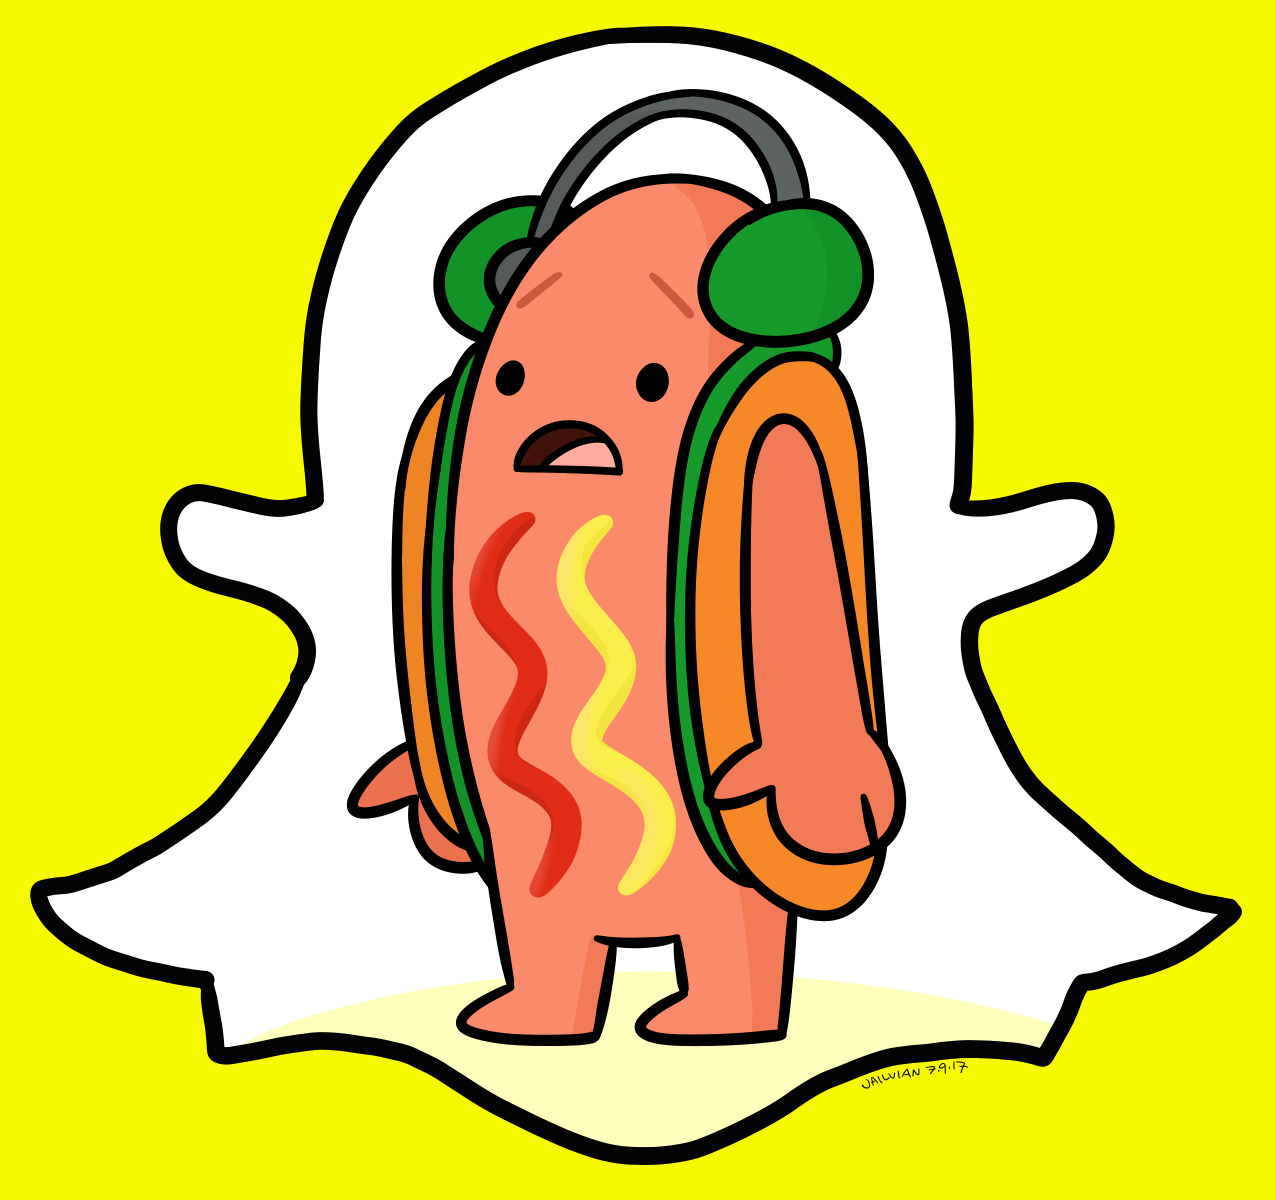 Snapchat hot dog clipart vector freeuse library Snapchat Hotdog Meme Fanart | Dancing Hot Dog Snapchat ... vector freeuse library